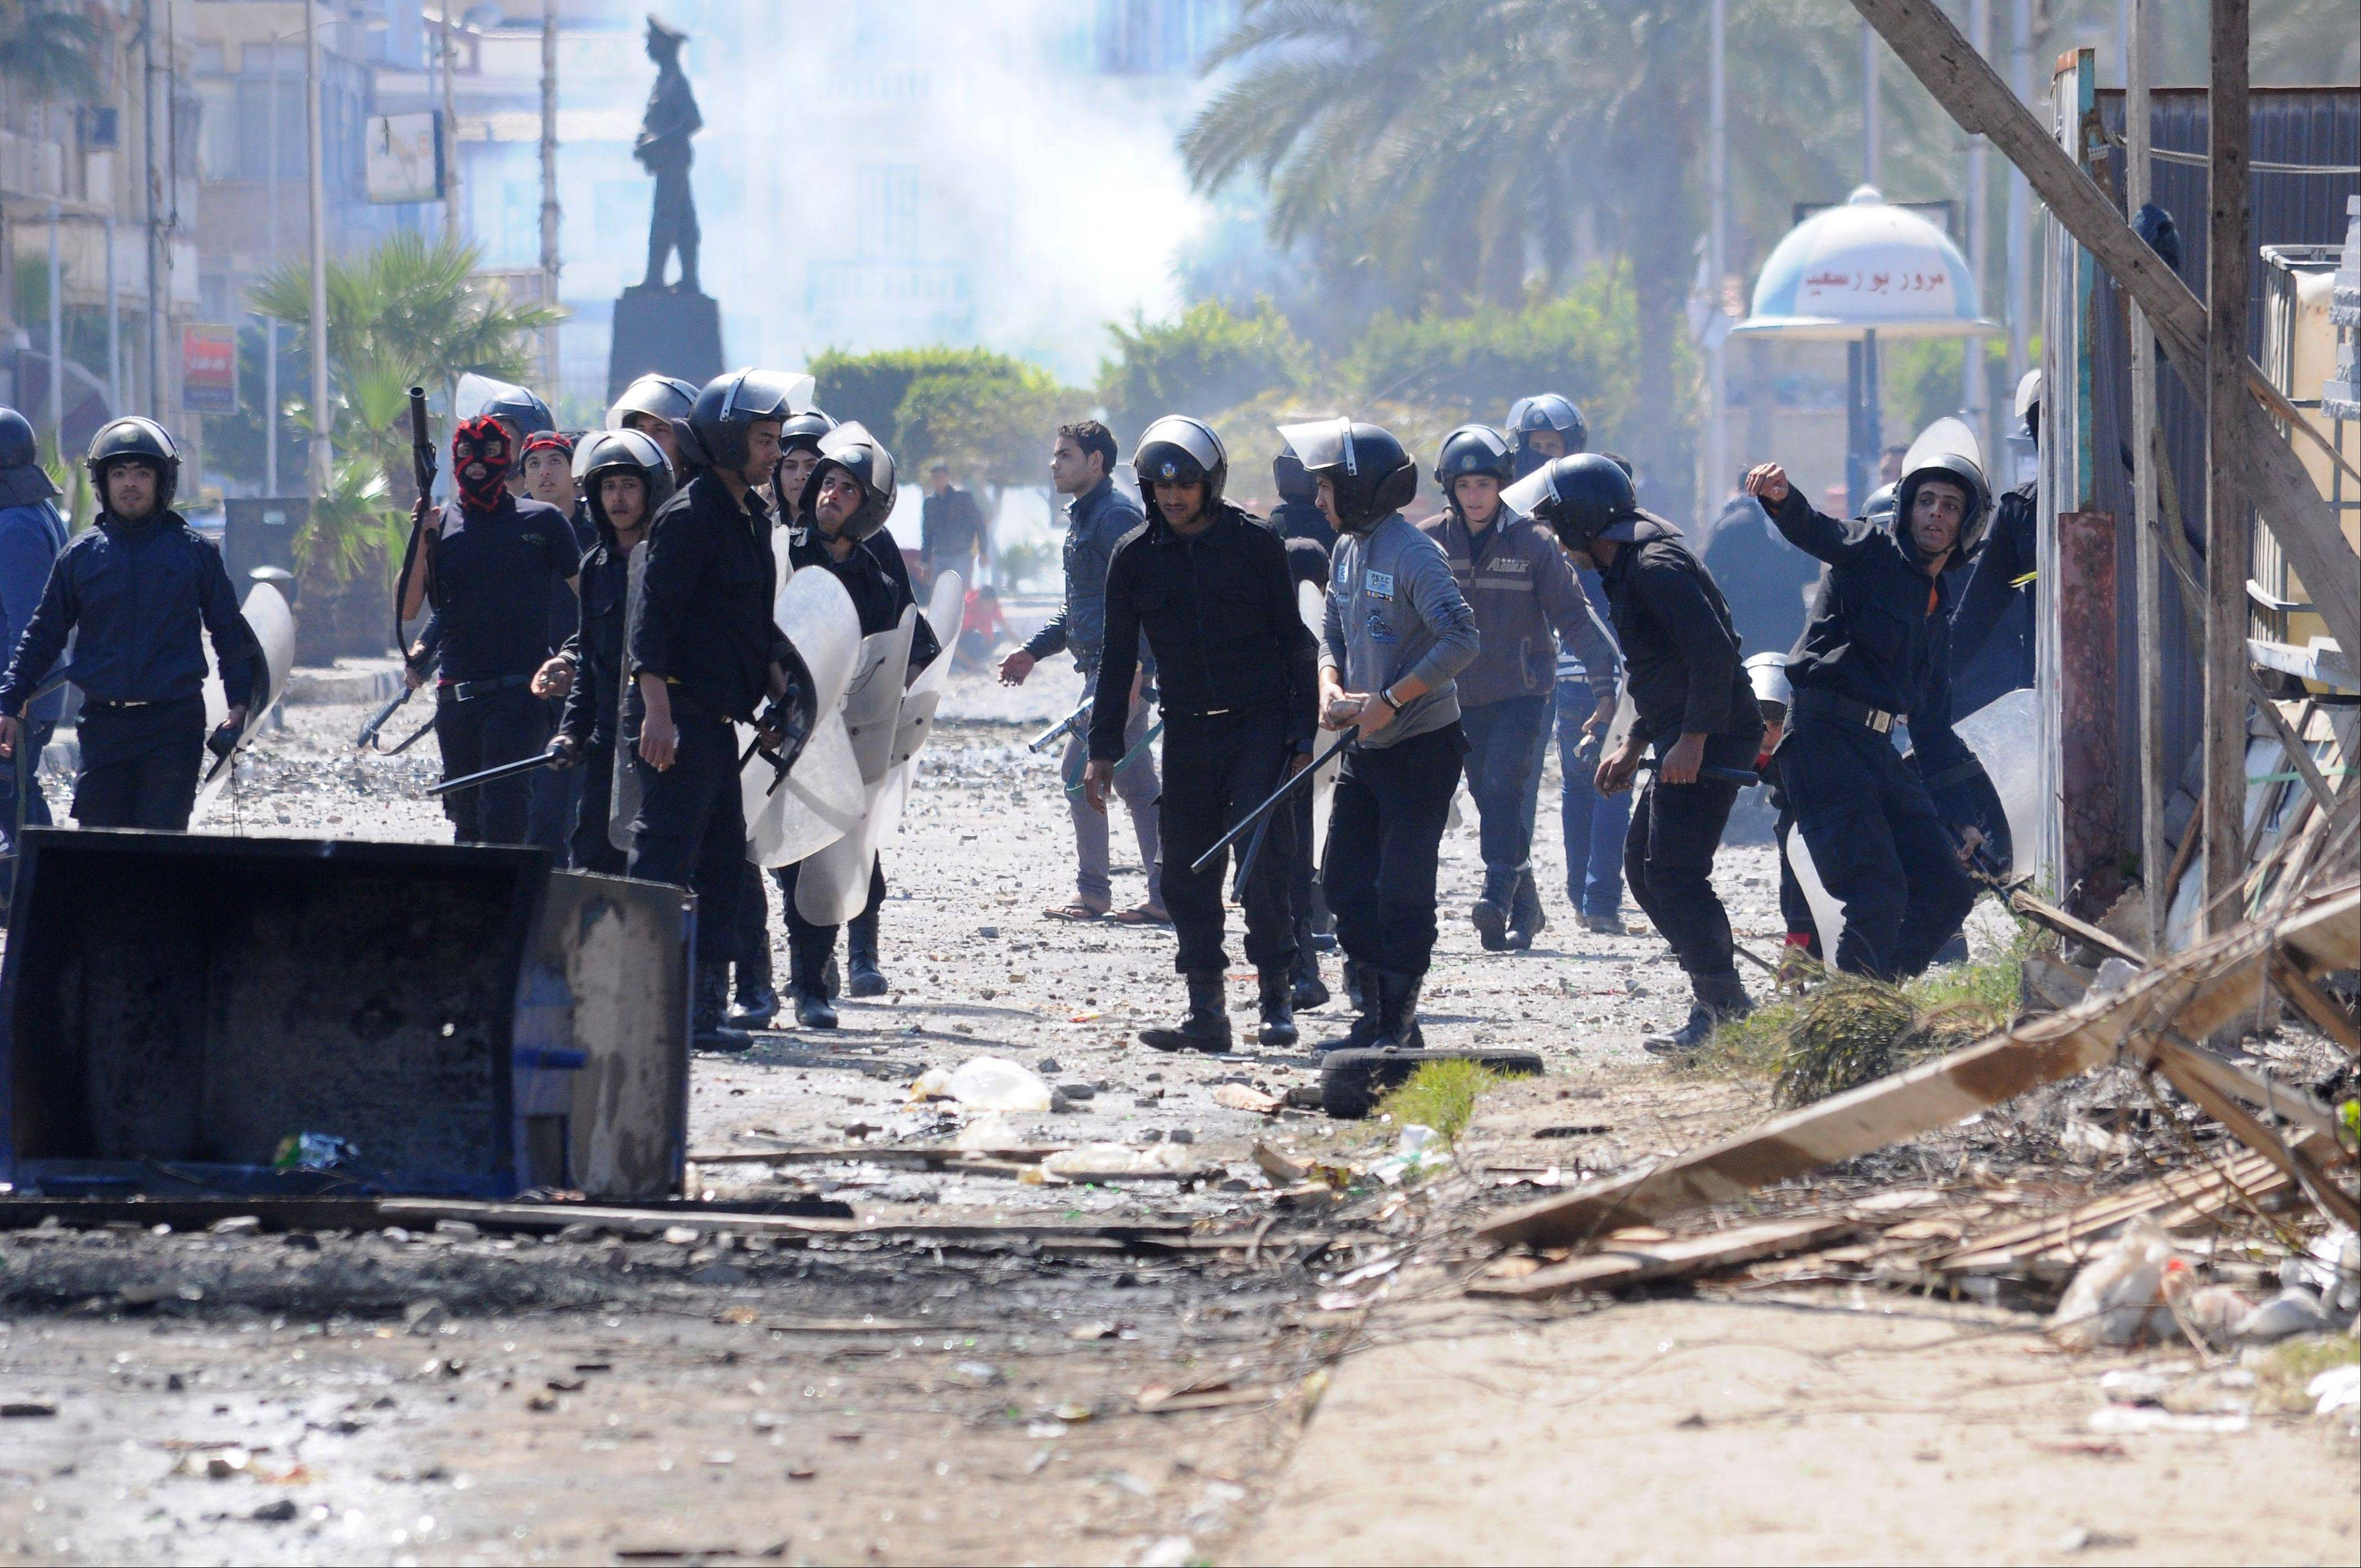 Riot police clash with protesters in Port Said, Egypt, Tuesday, March 5, 2013. Egypt�s Islamist president is considering whether to give the military full control of the restive Suez Canal city of Port Said after days of deadly street clashes stoked by excessive use of force by riot police, officials said Tuesday.